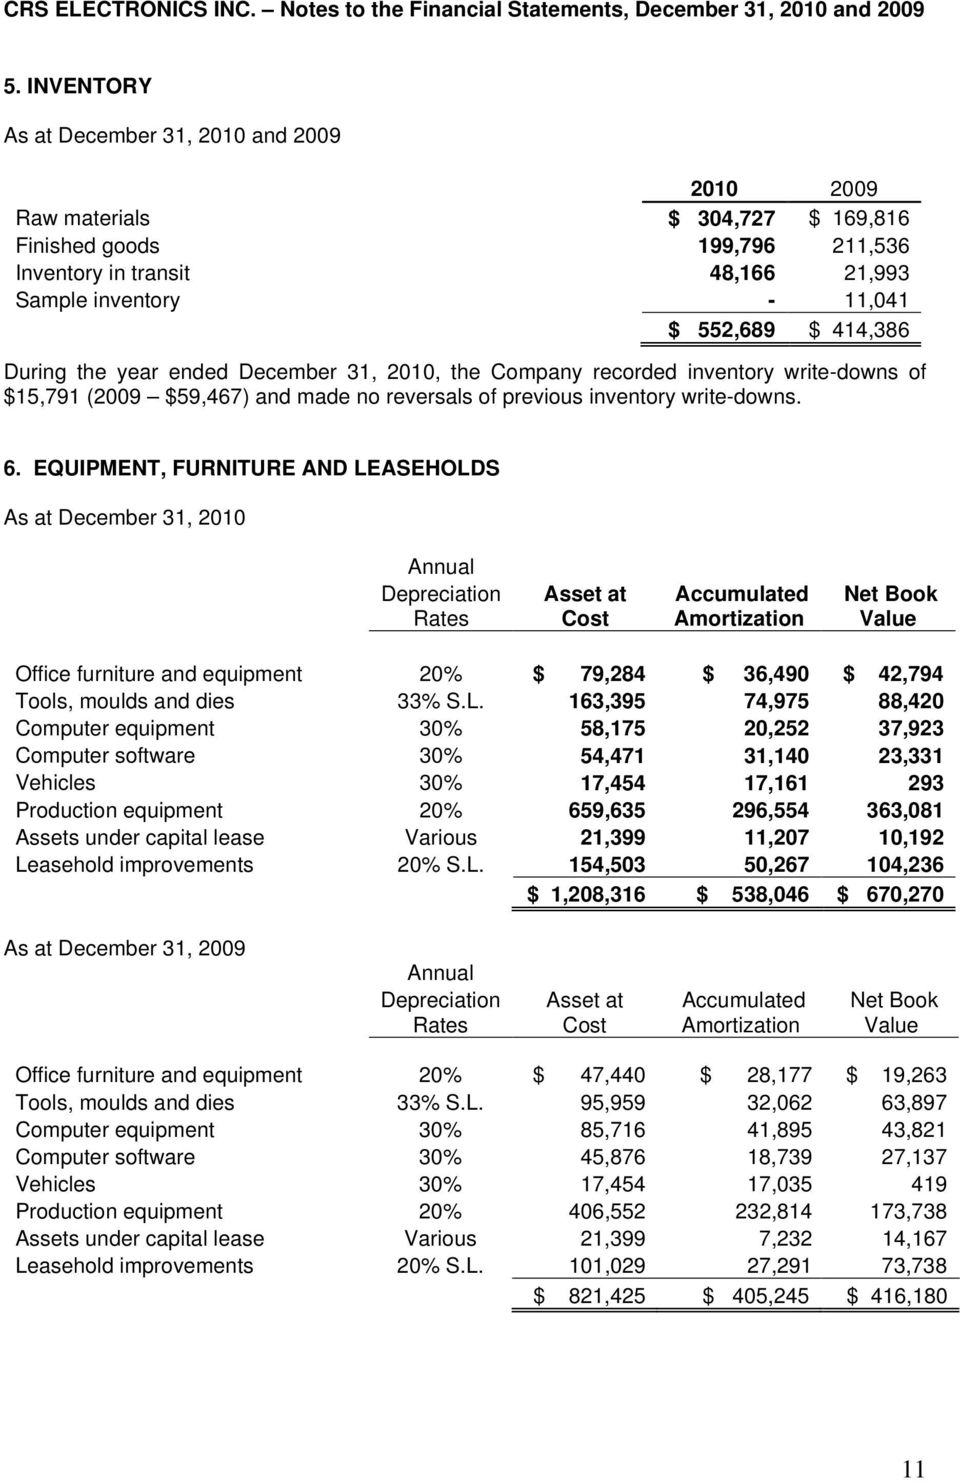 EQUIPMENT, FURNITURE AND LEASEHOLDS As at December 31, 2010 Annual Depreciation Rates Asset at Cost Accumulated Amortization Net Book Value Office furniture and equipment 20% $ 79,284 $ 36,490 $